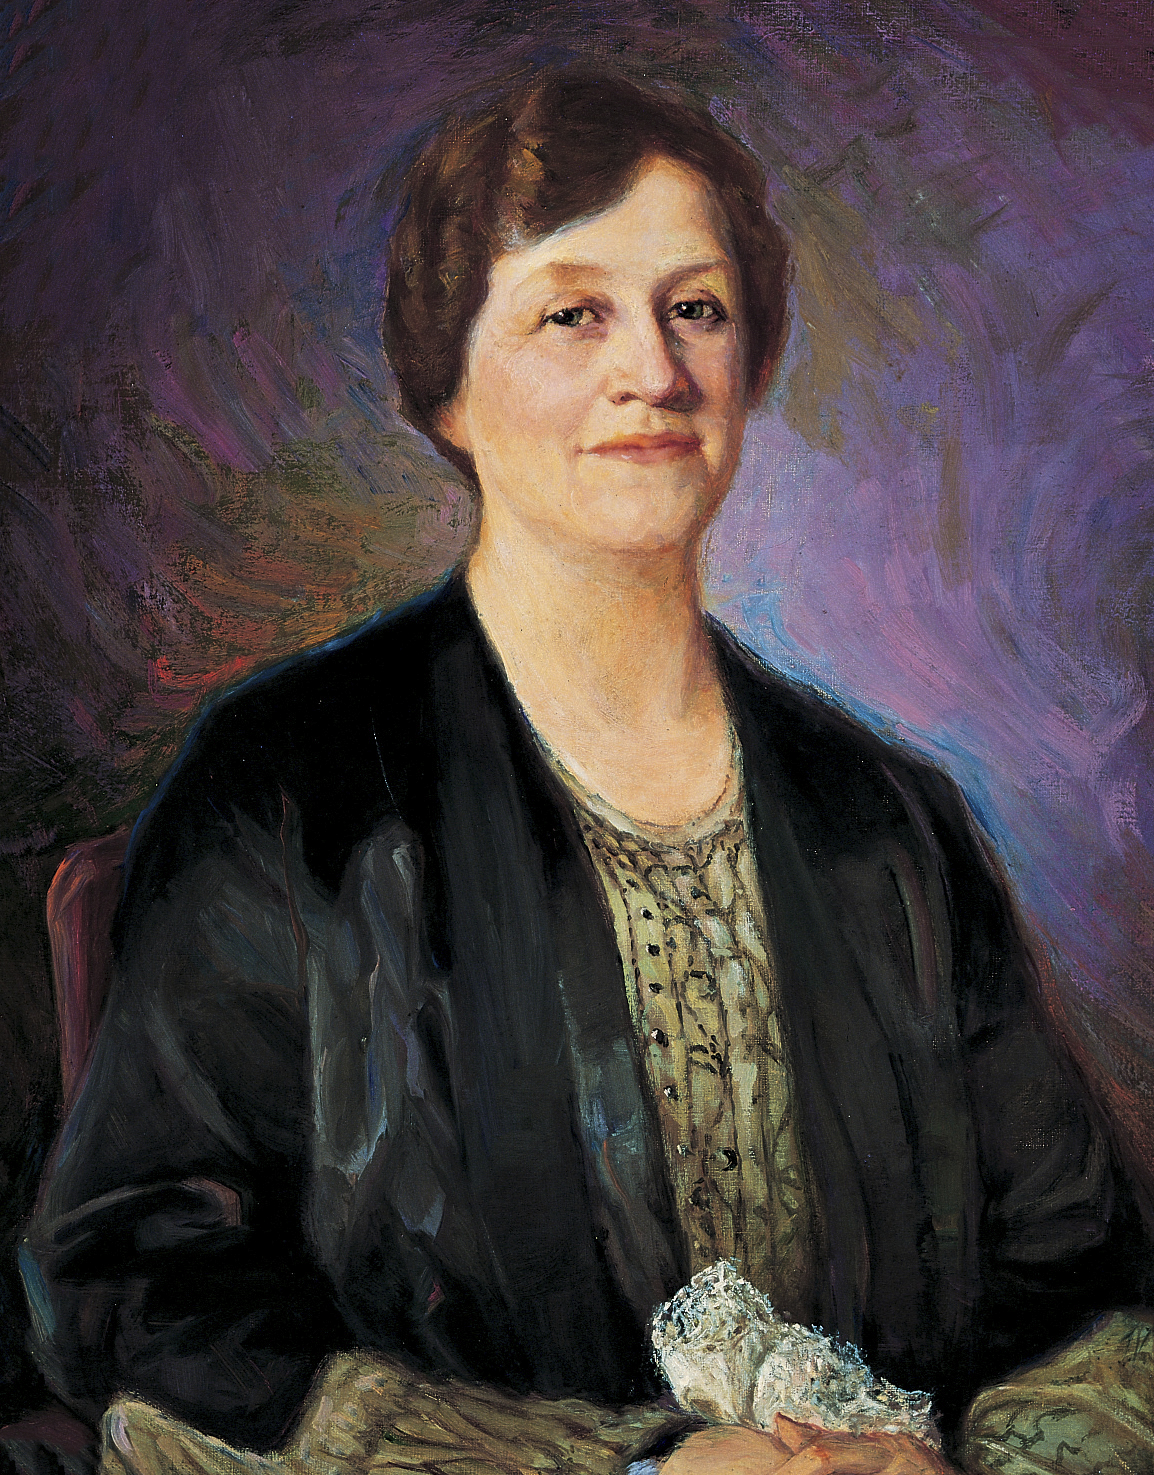 A portrait of Louise Yates Robison, who served as the seventh general president of the Relief Society from 1928 to 1939; painted by John Willard Clawson.